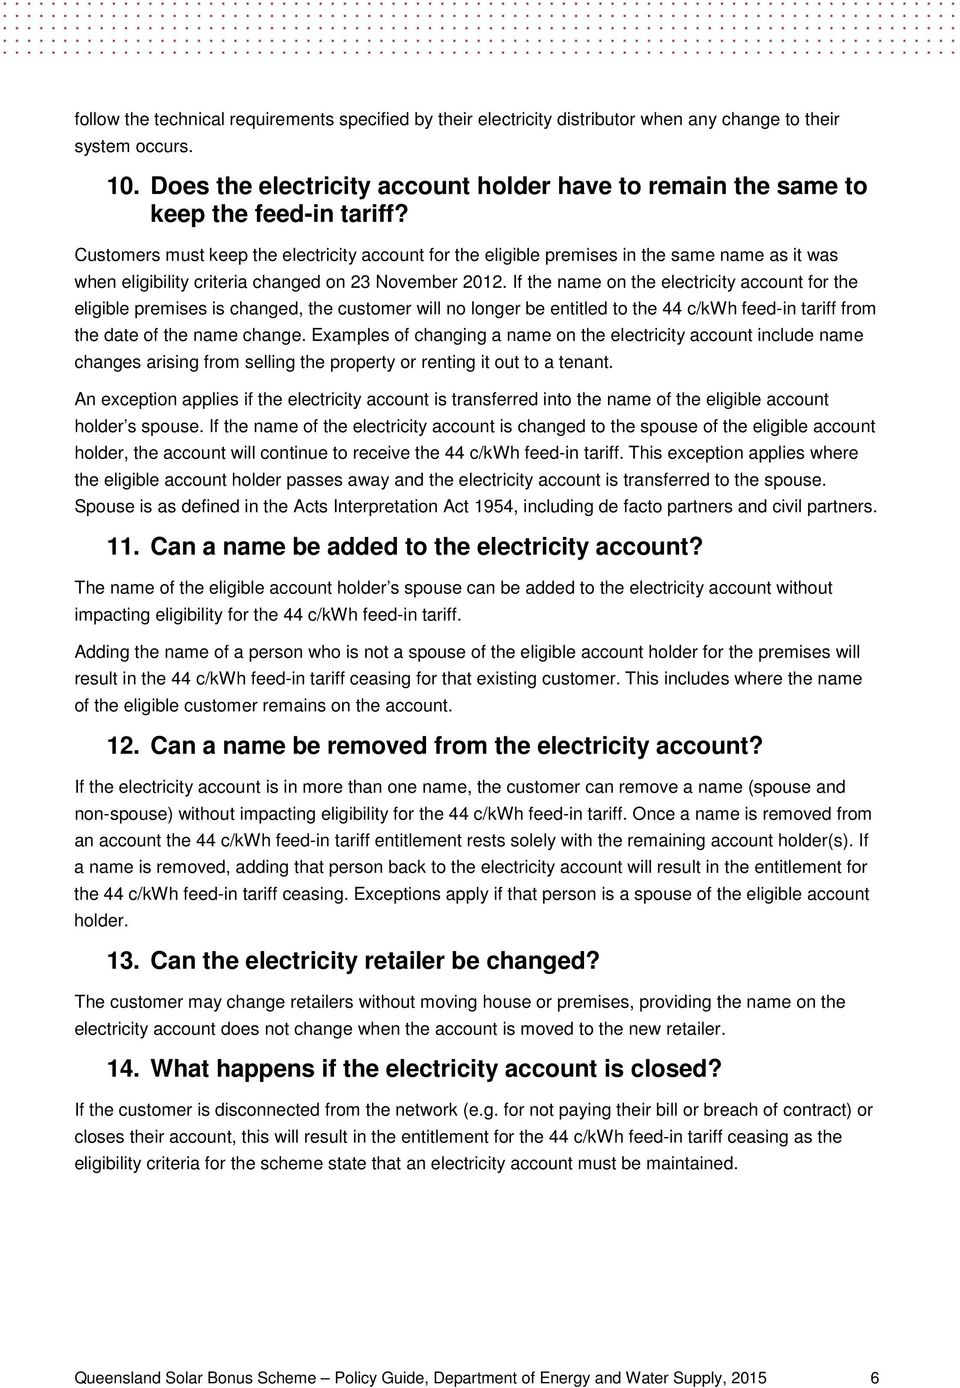 Customers must keep the electricity account for the eligible premises in the same name as it was when eligibility criteria changed on 23 November 2012.